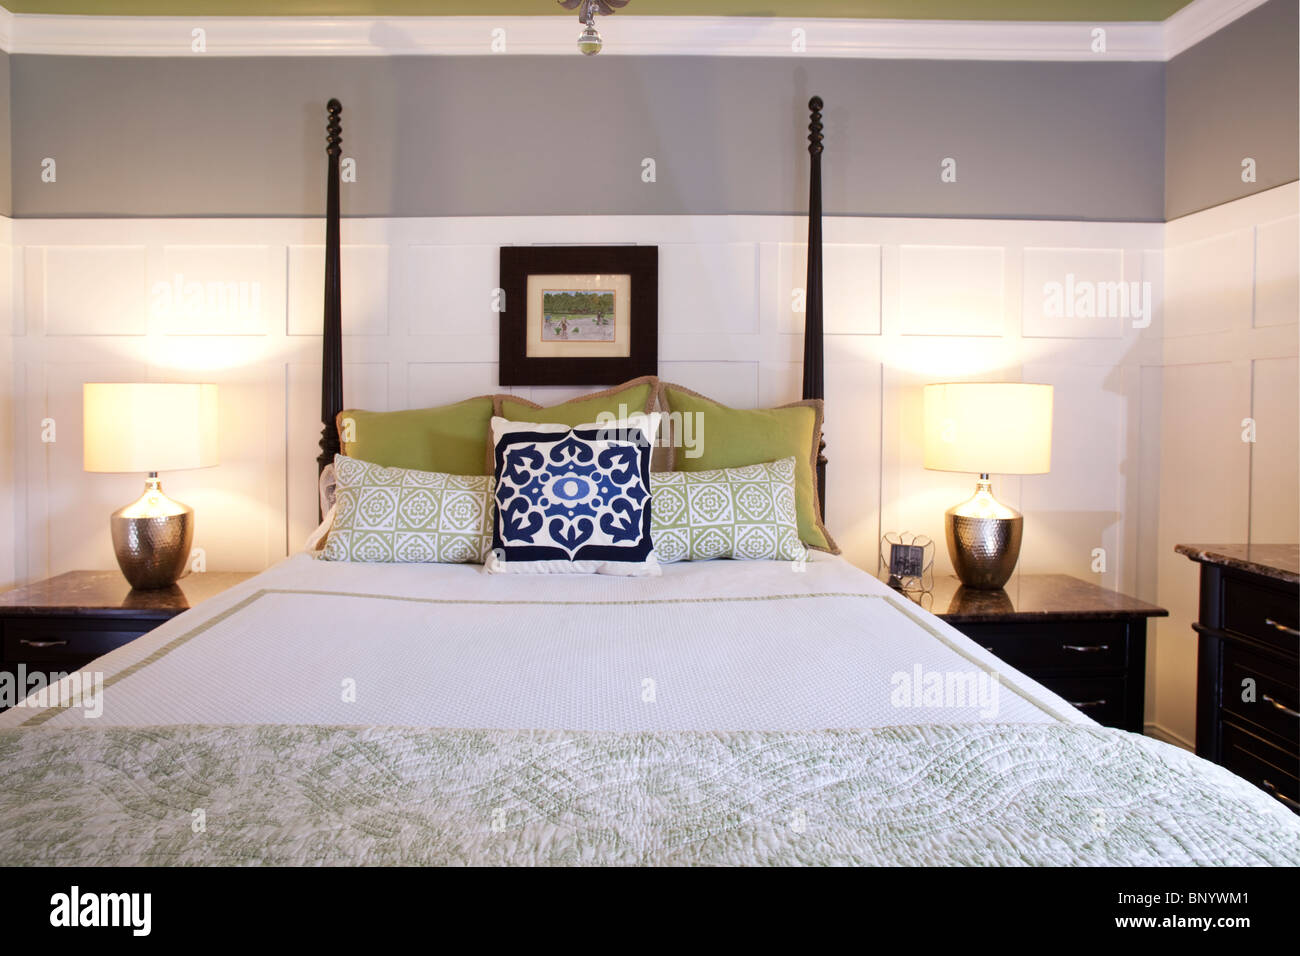 Four poster bed with bedside lamps and white and gray wall beyond. Beddings with matching colors. Interior design - Stock Image